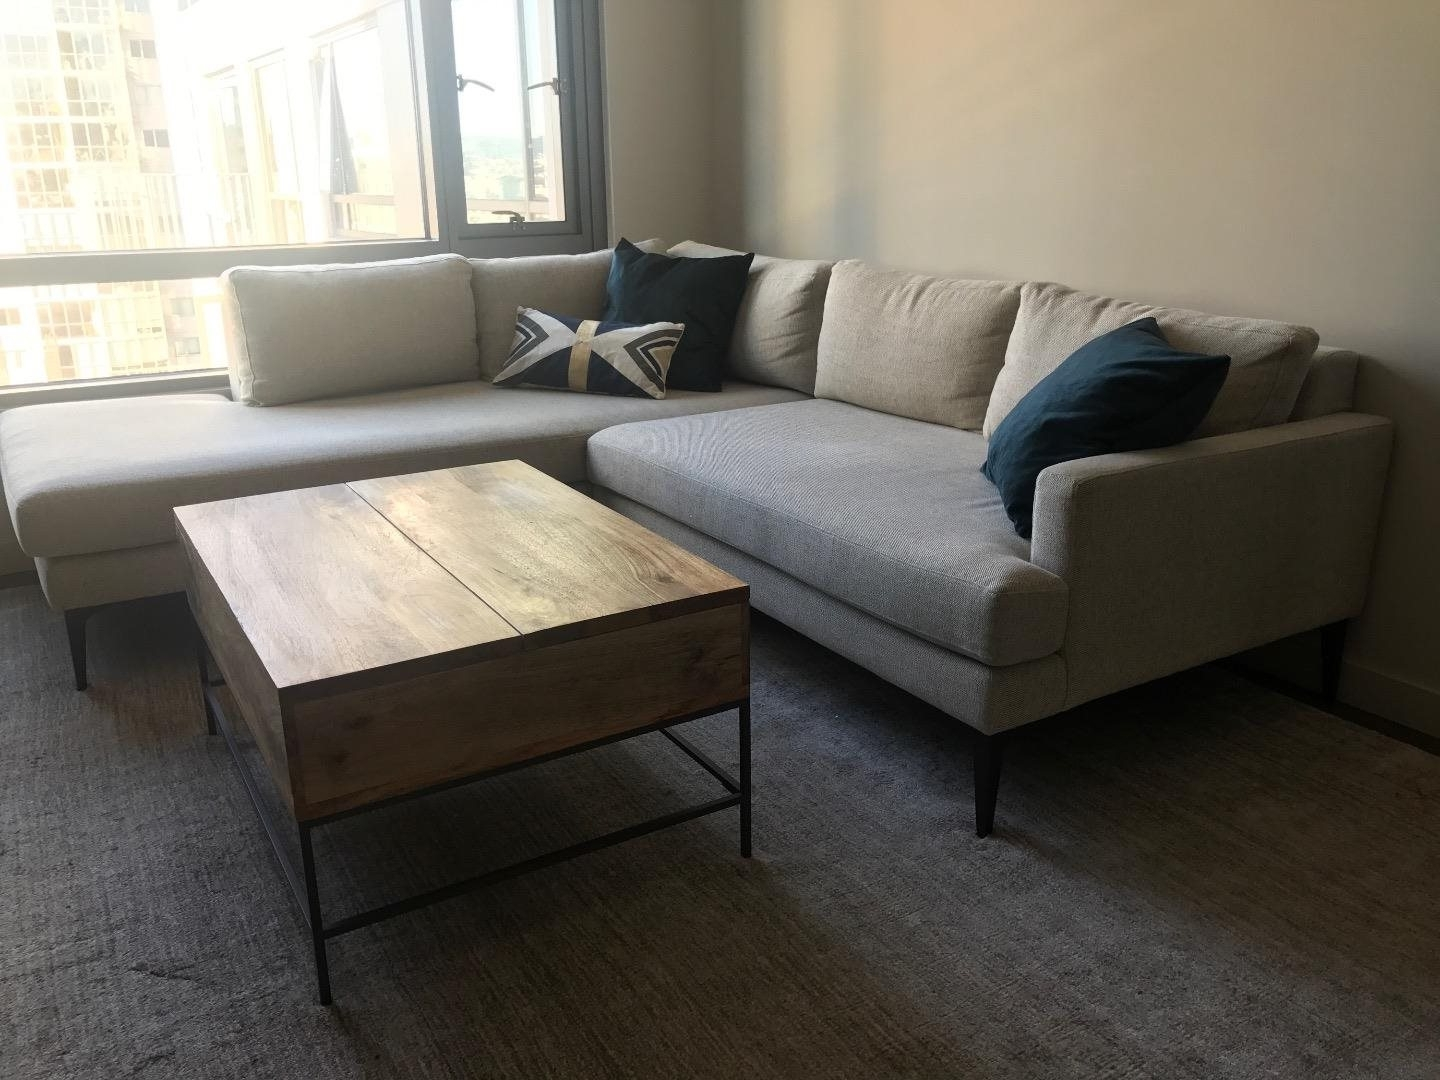 West Elm Andes Terminal Chaise Sectional Couch: For Sale In San Throughout Well Liked West Elm Sectional Sofas (View 13 of 20)